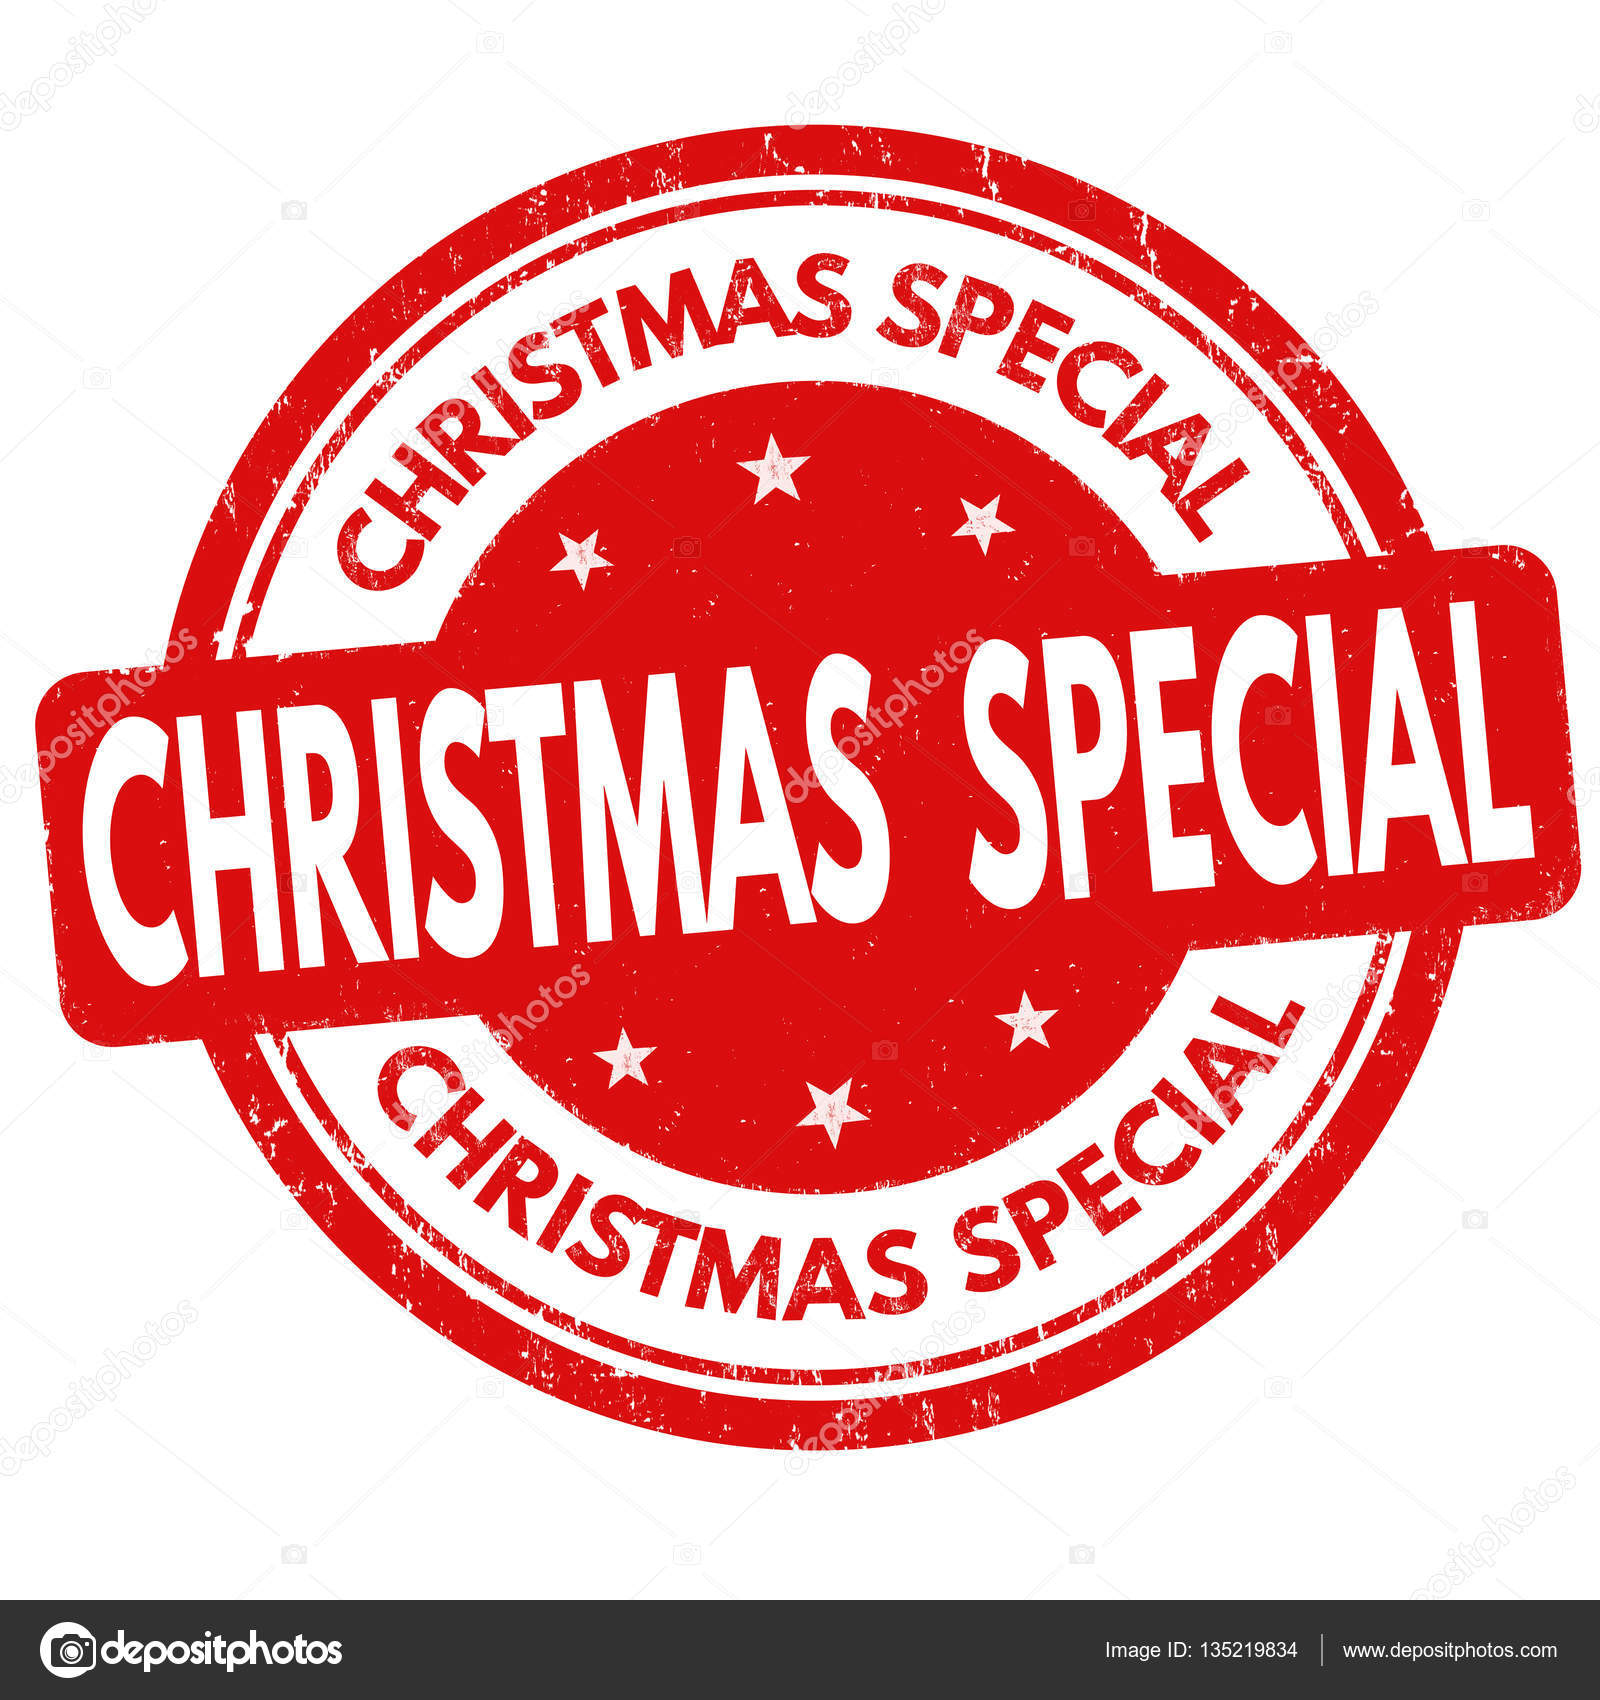 Christmas Special.Christmas Special Sign Or Stamp Stock Vector